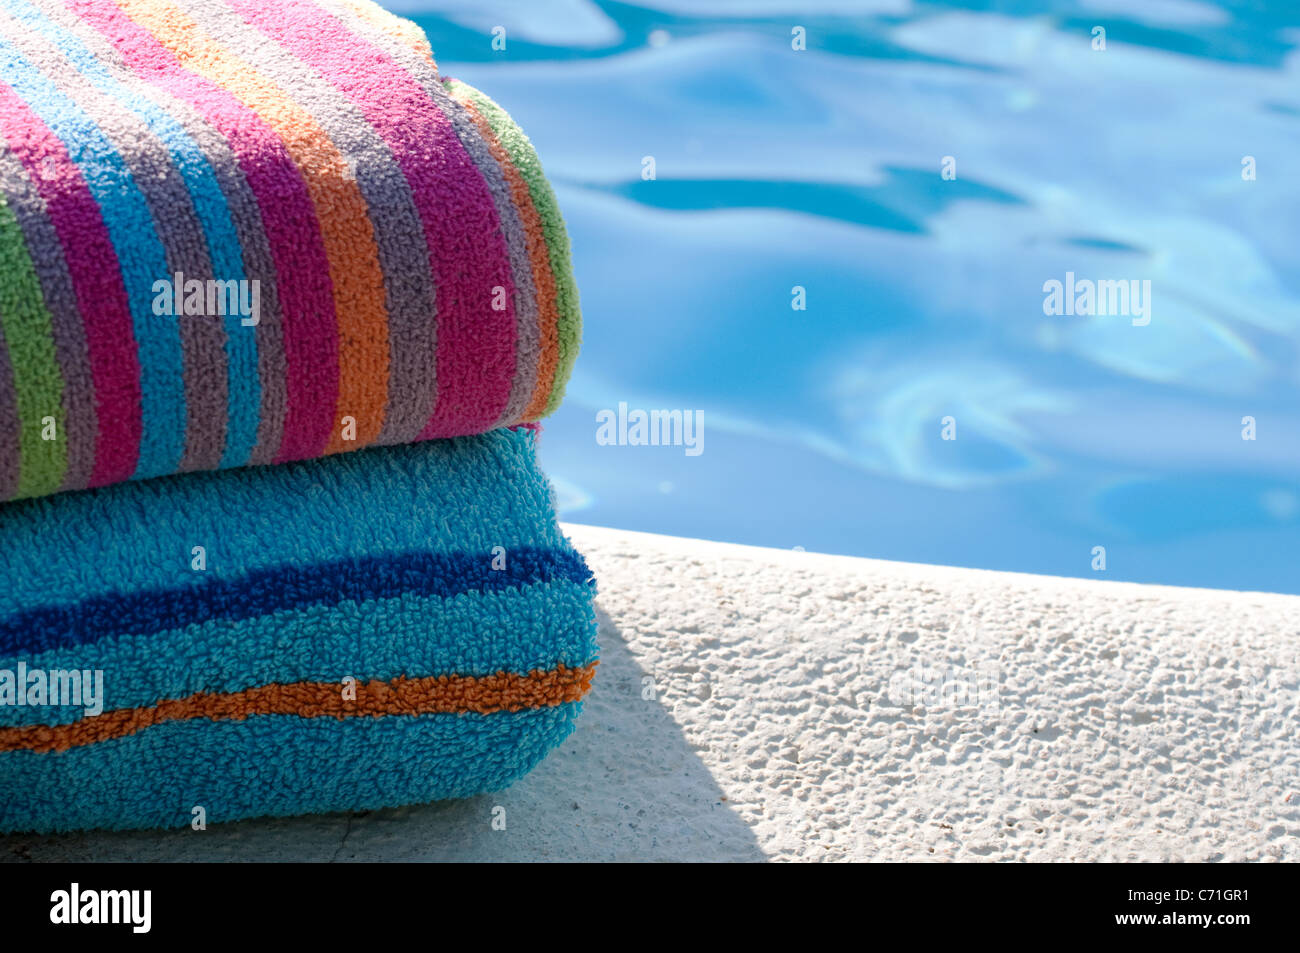 Colourful towels folded by pool - Stock Image